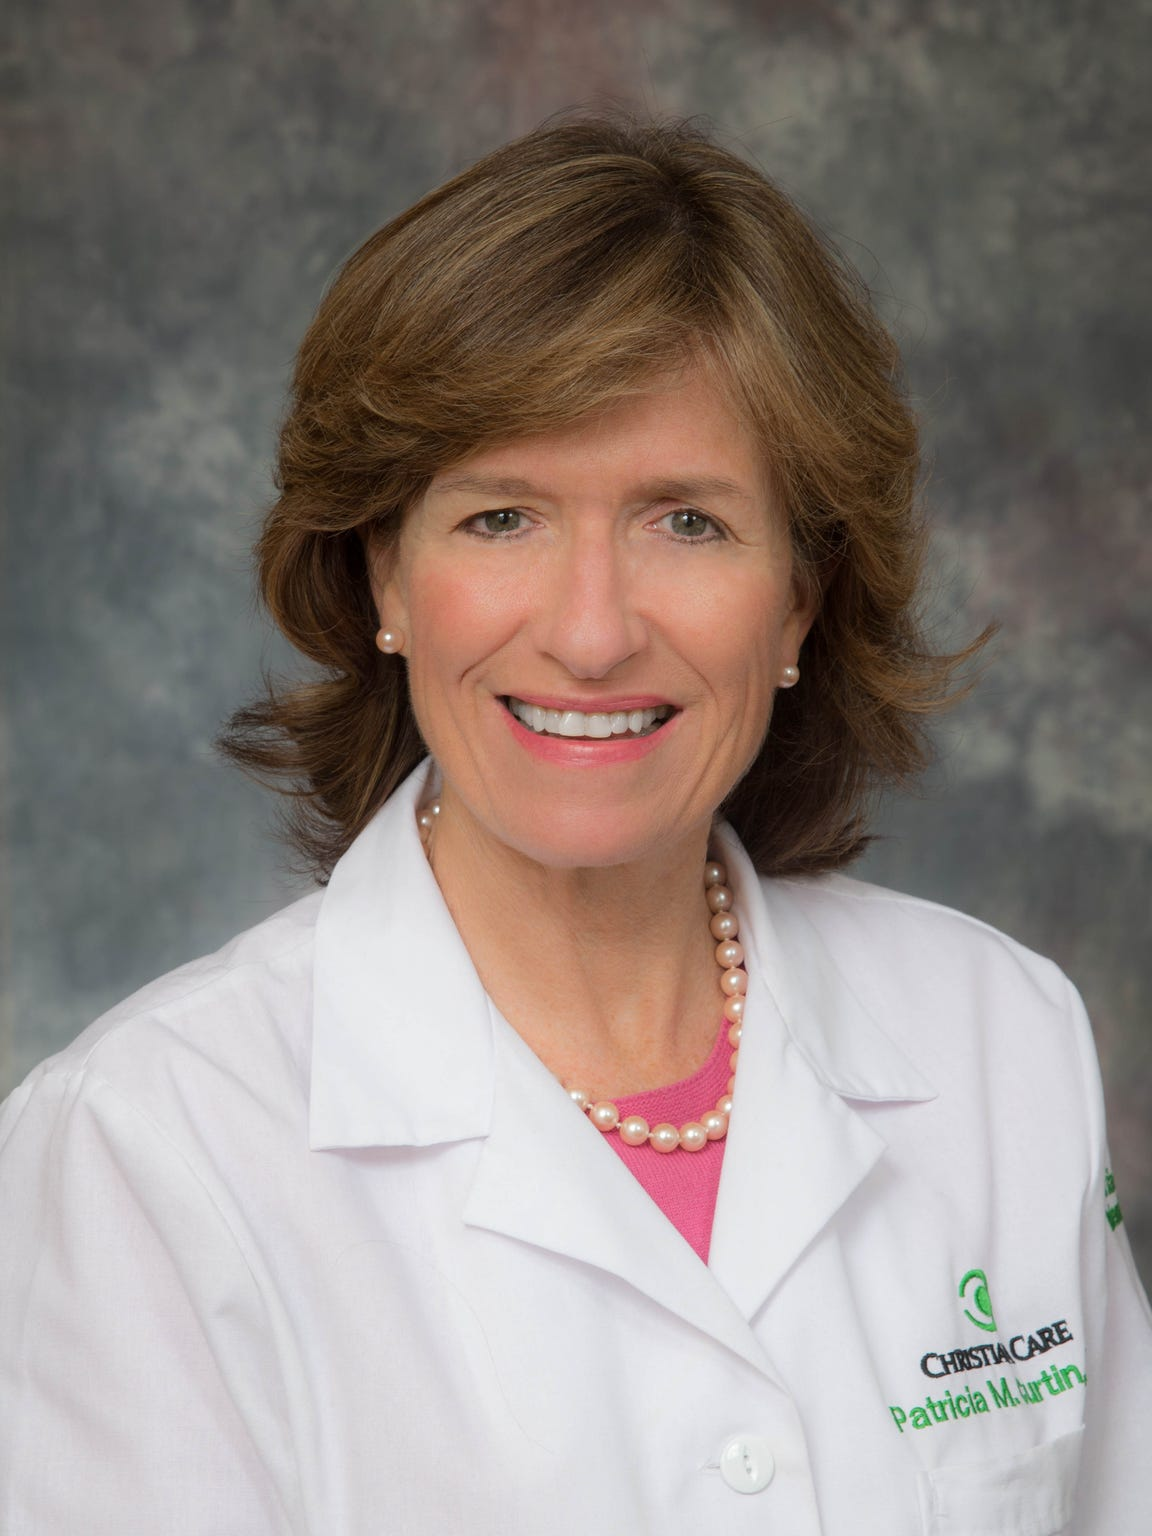 Dr. Patricia Curtin has led 10 medical mission trips to Haiti.